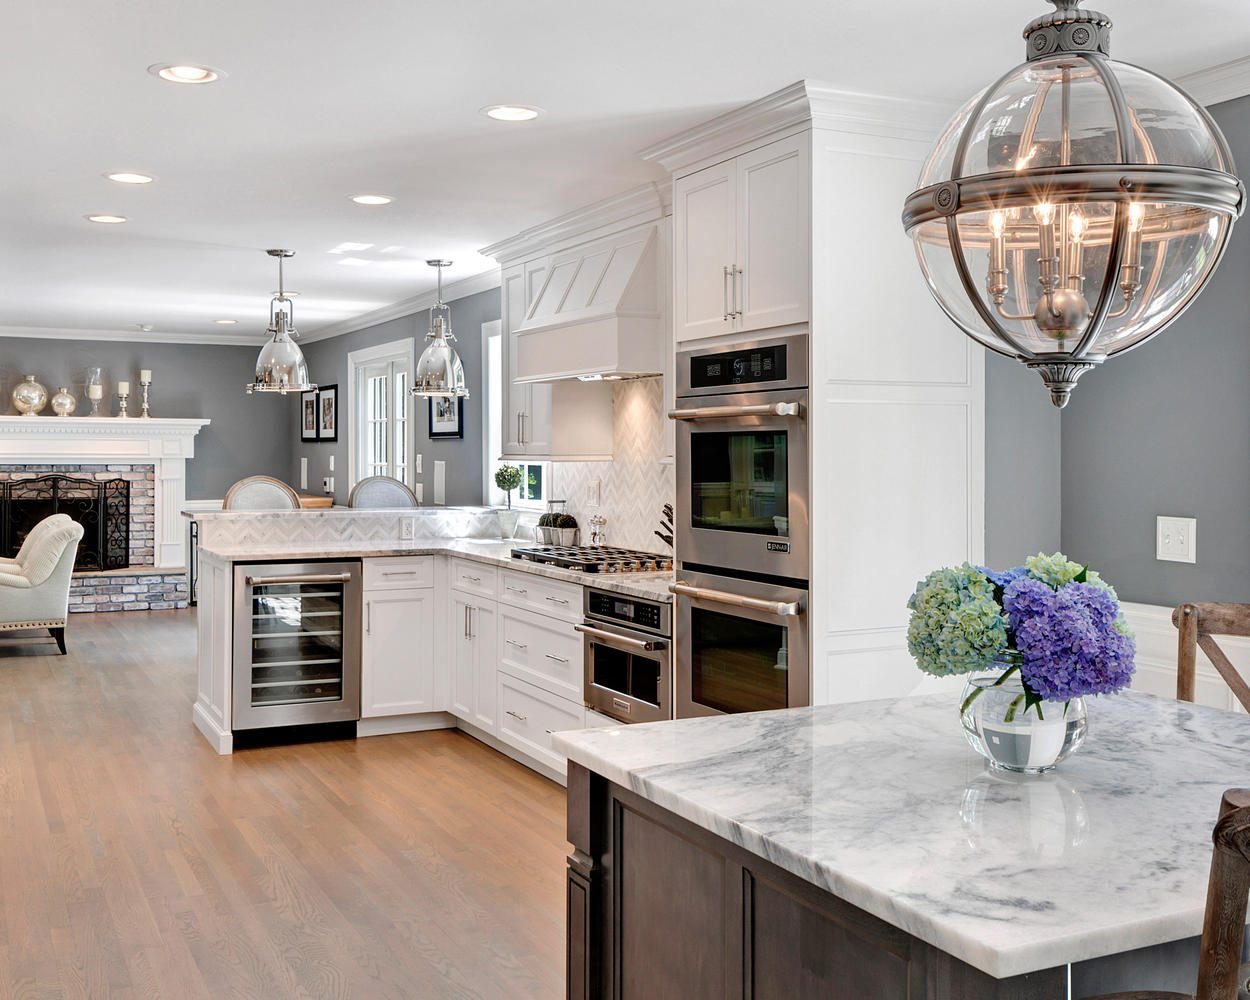 New White Kitchen timeless grey and white kitchen middletown new jerseydesign